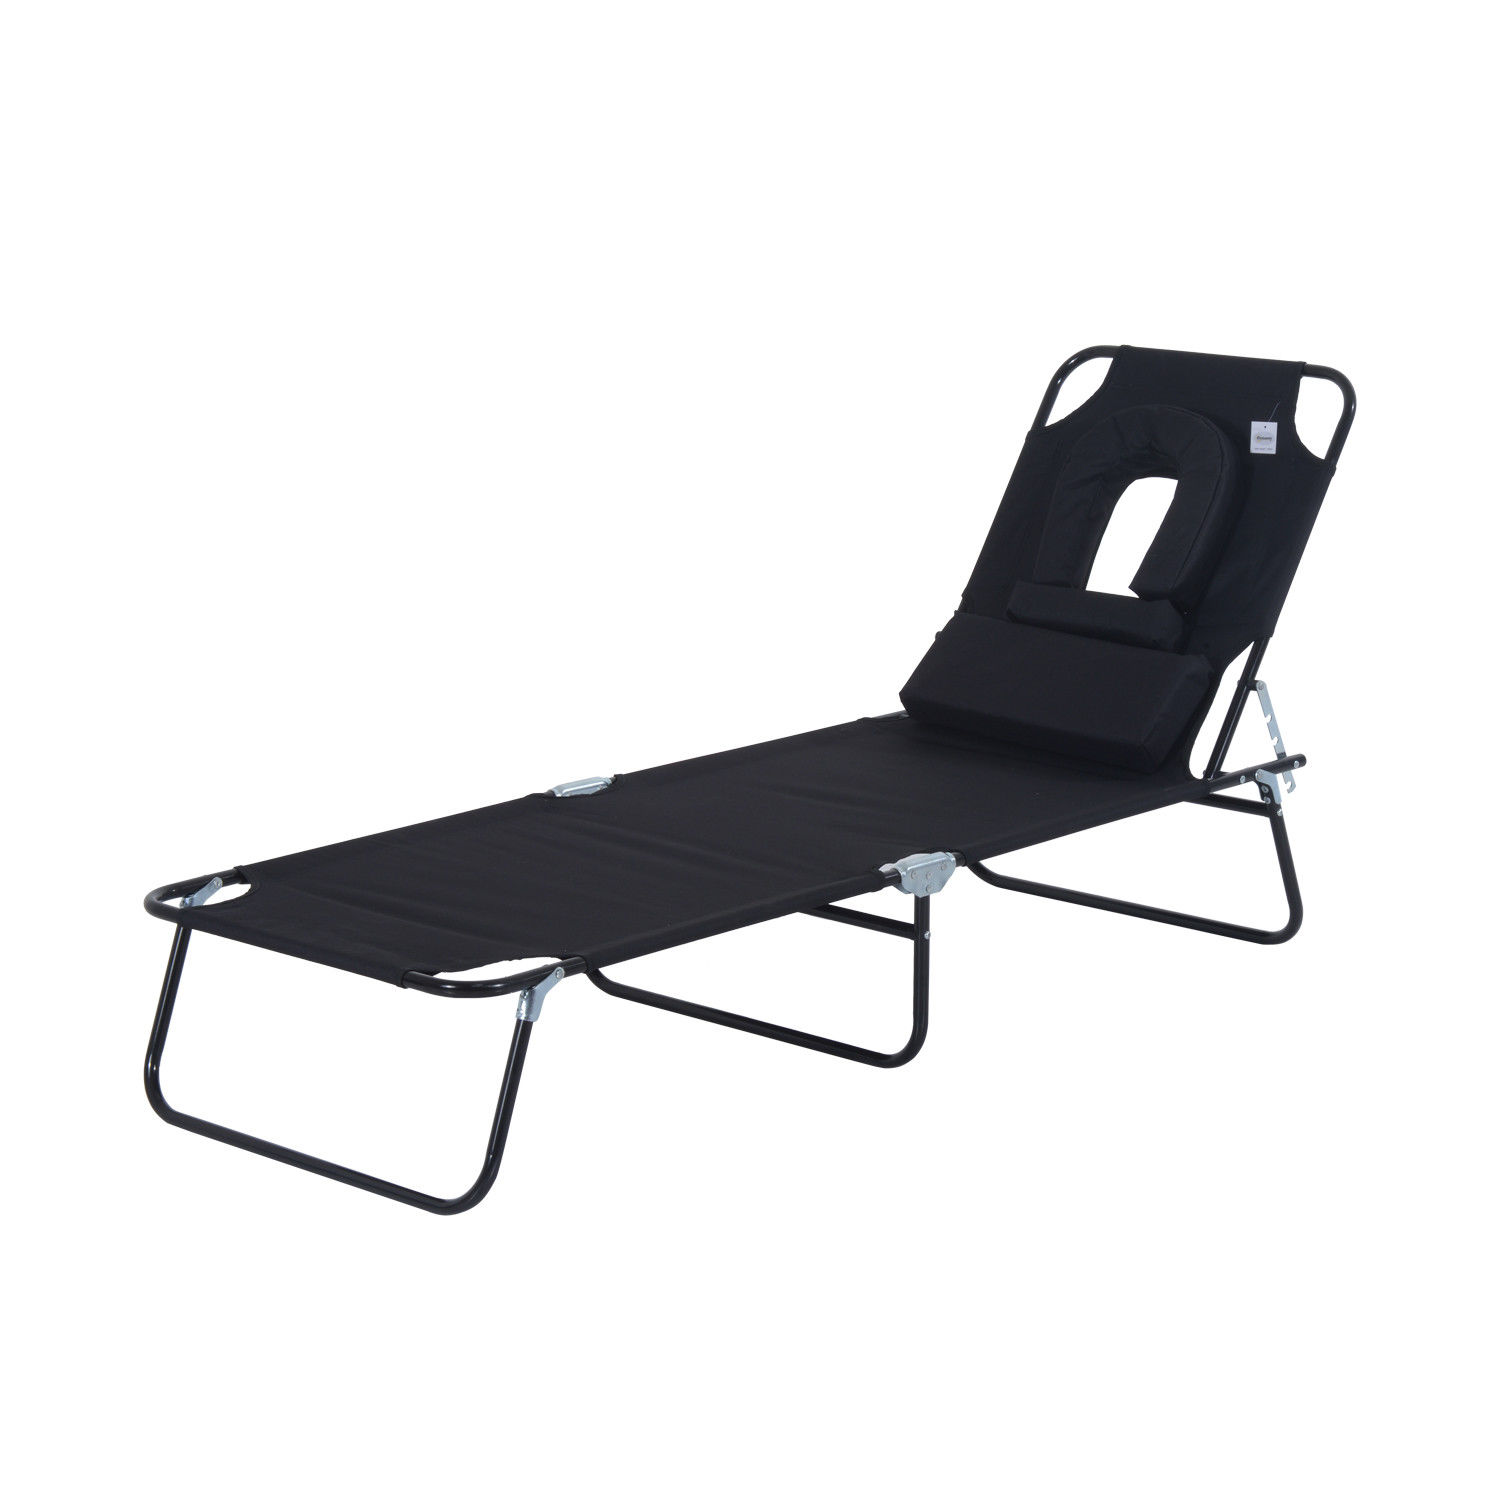 lounge sun heavy garden living adjustable outsunny reclining recliner gravity outdoor patio chair duty pillow folding lounger chaise beach with grey